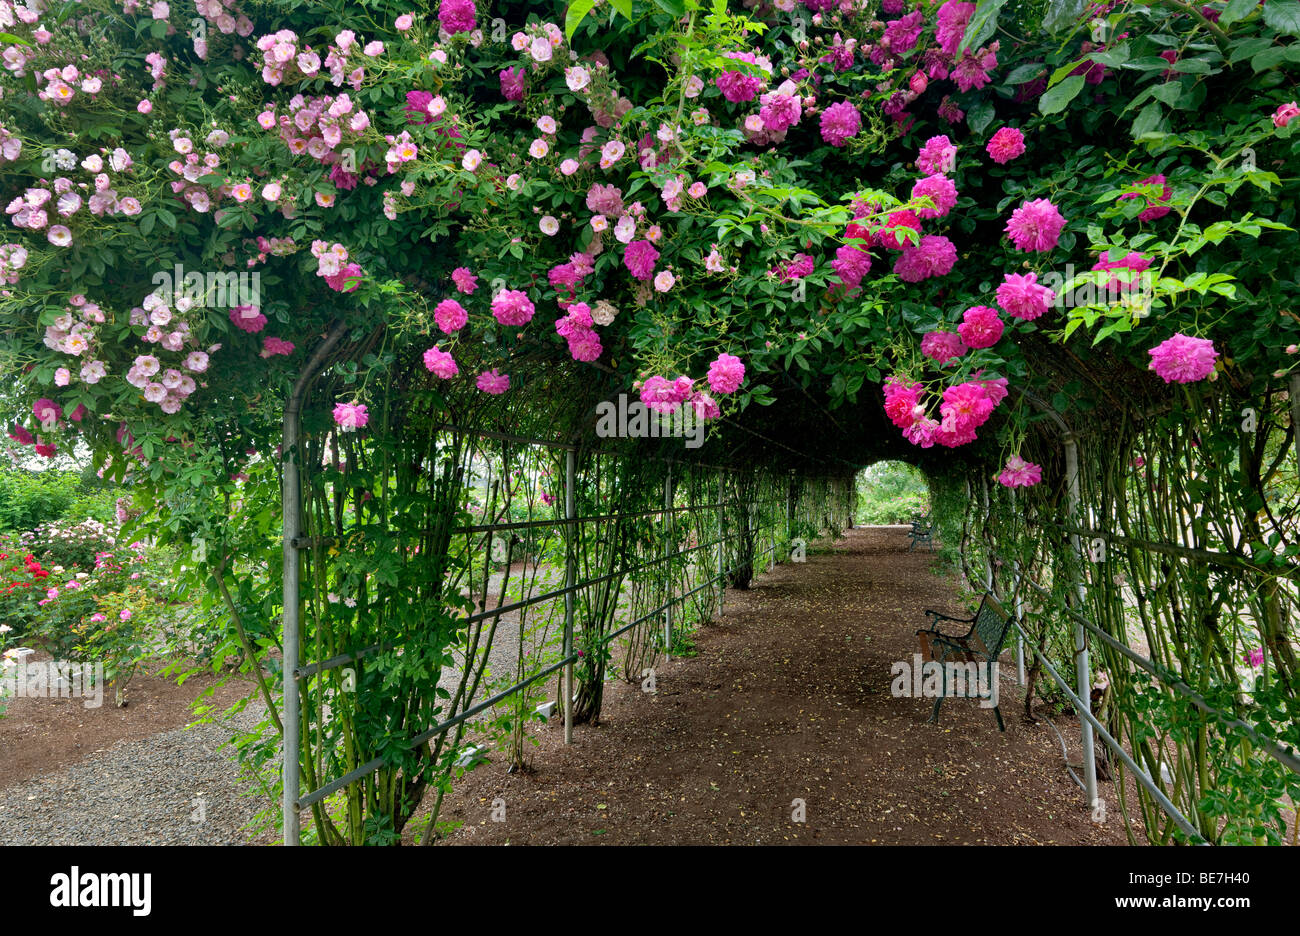 Tunnel through climbing roses. Heirloom Gardens. St. Paul, Oregon - Stock Image